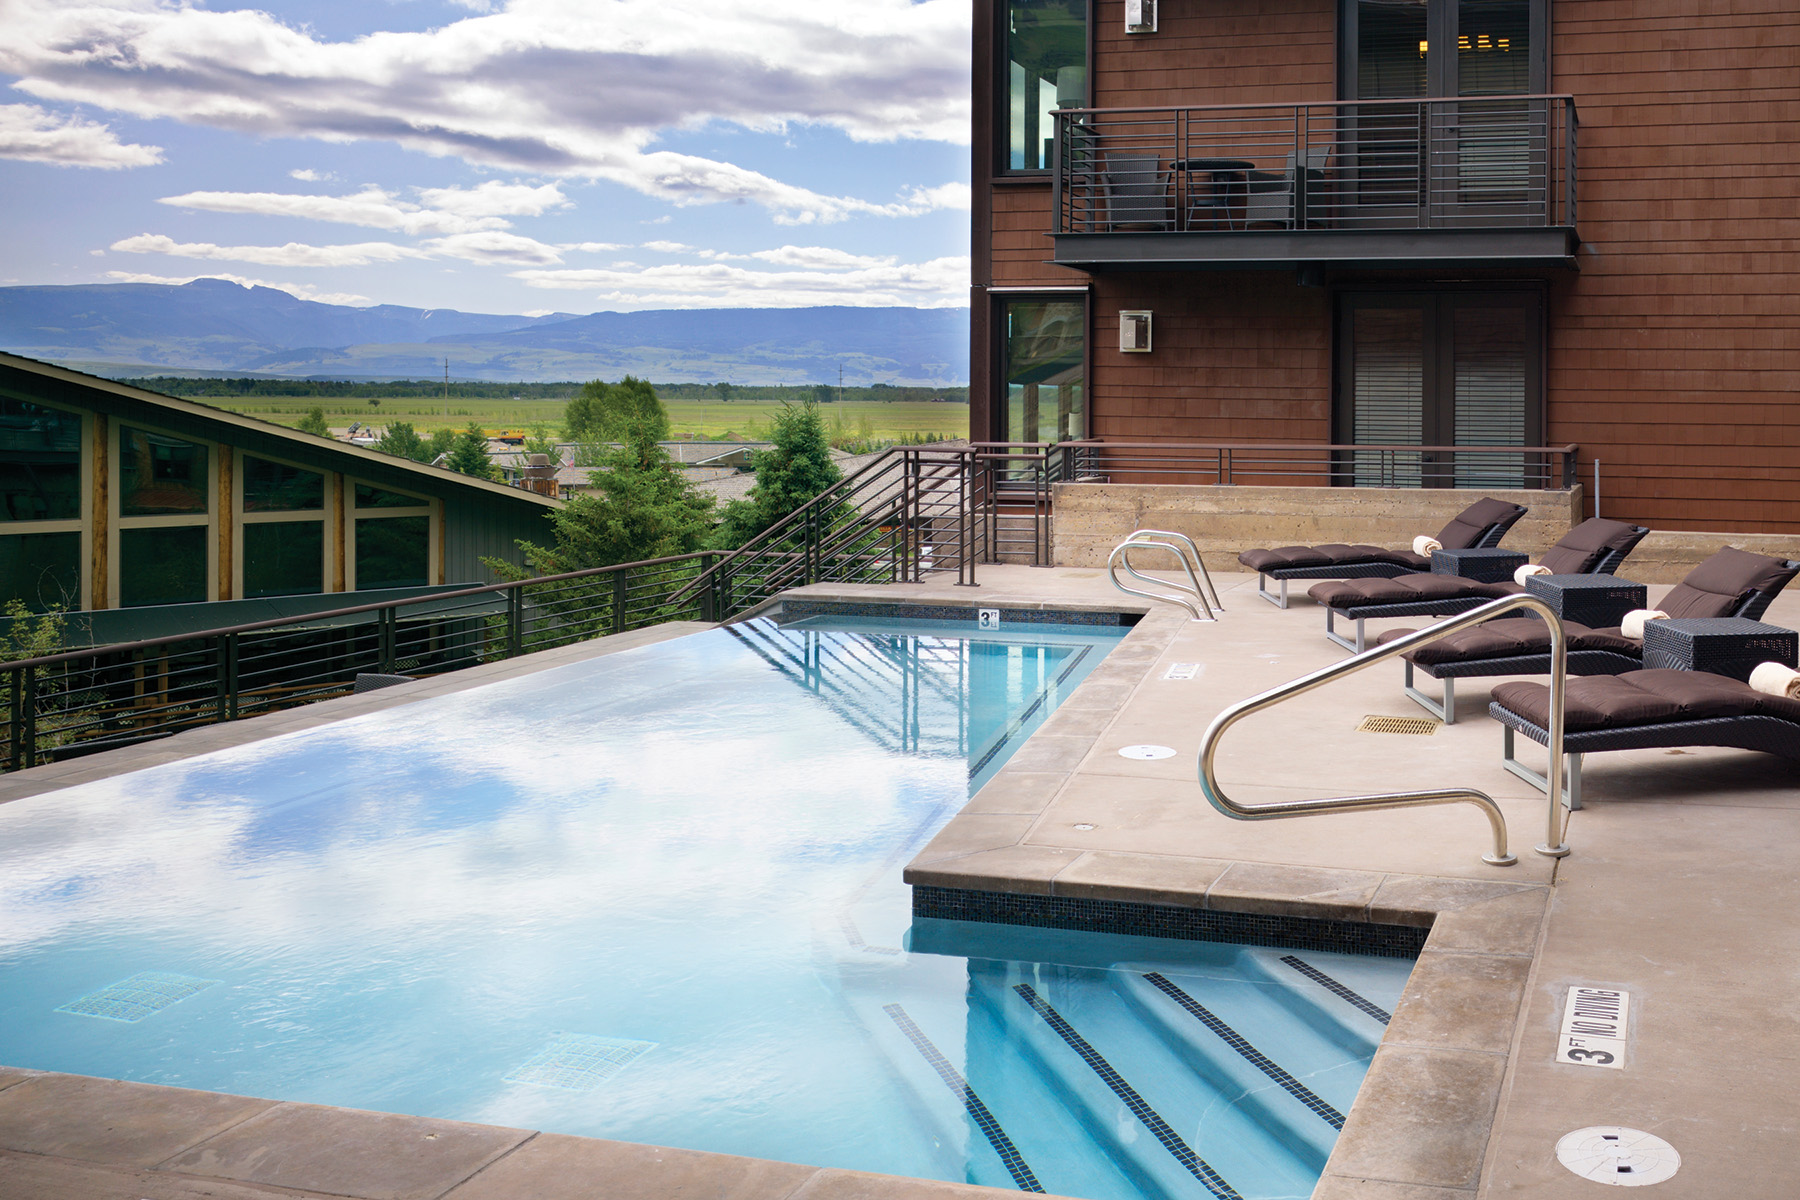 Condominium for Sale at Slopeside in Hotel Terra 3325 W. Village Drive unit 457 Teton Village, Wyoming 83025 United States